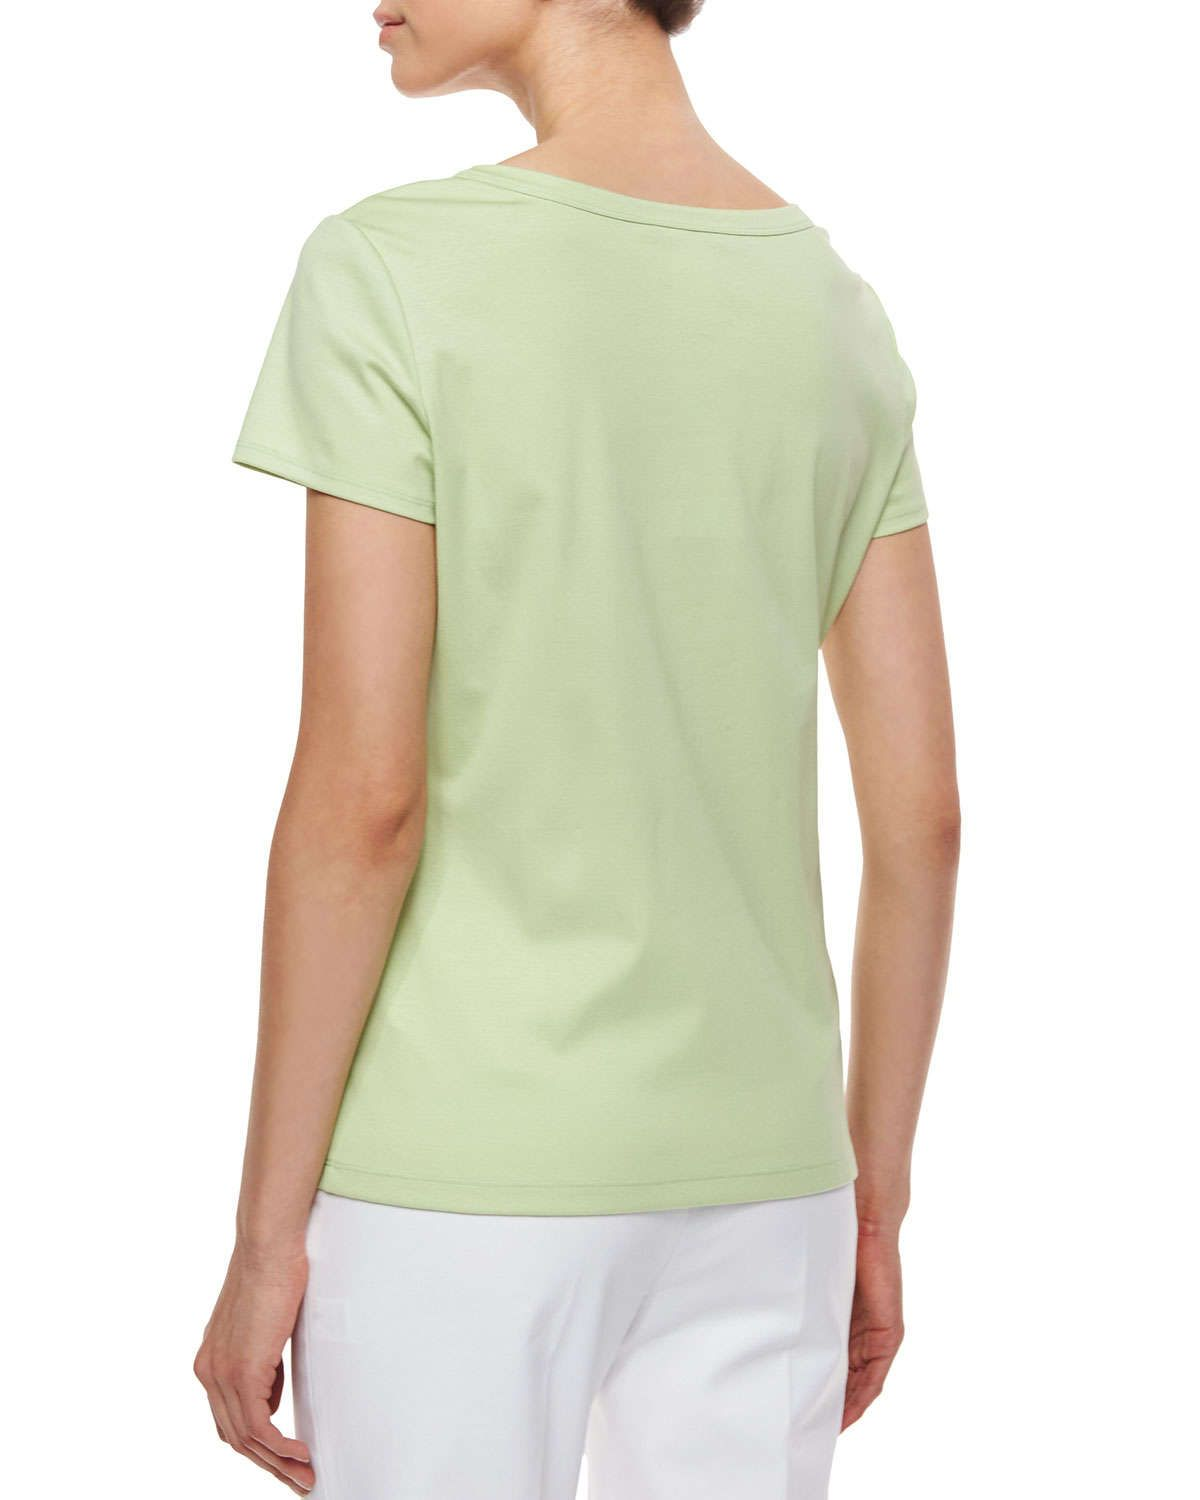 Cotton-Stretch Basic Tee, Mint